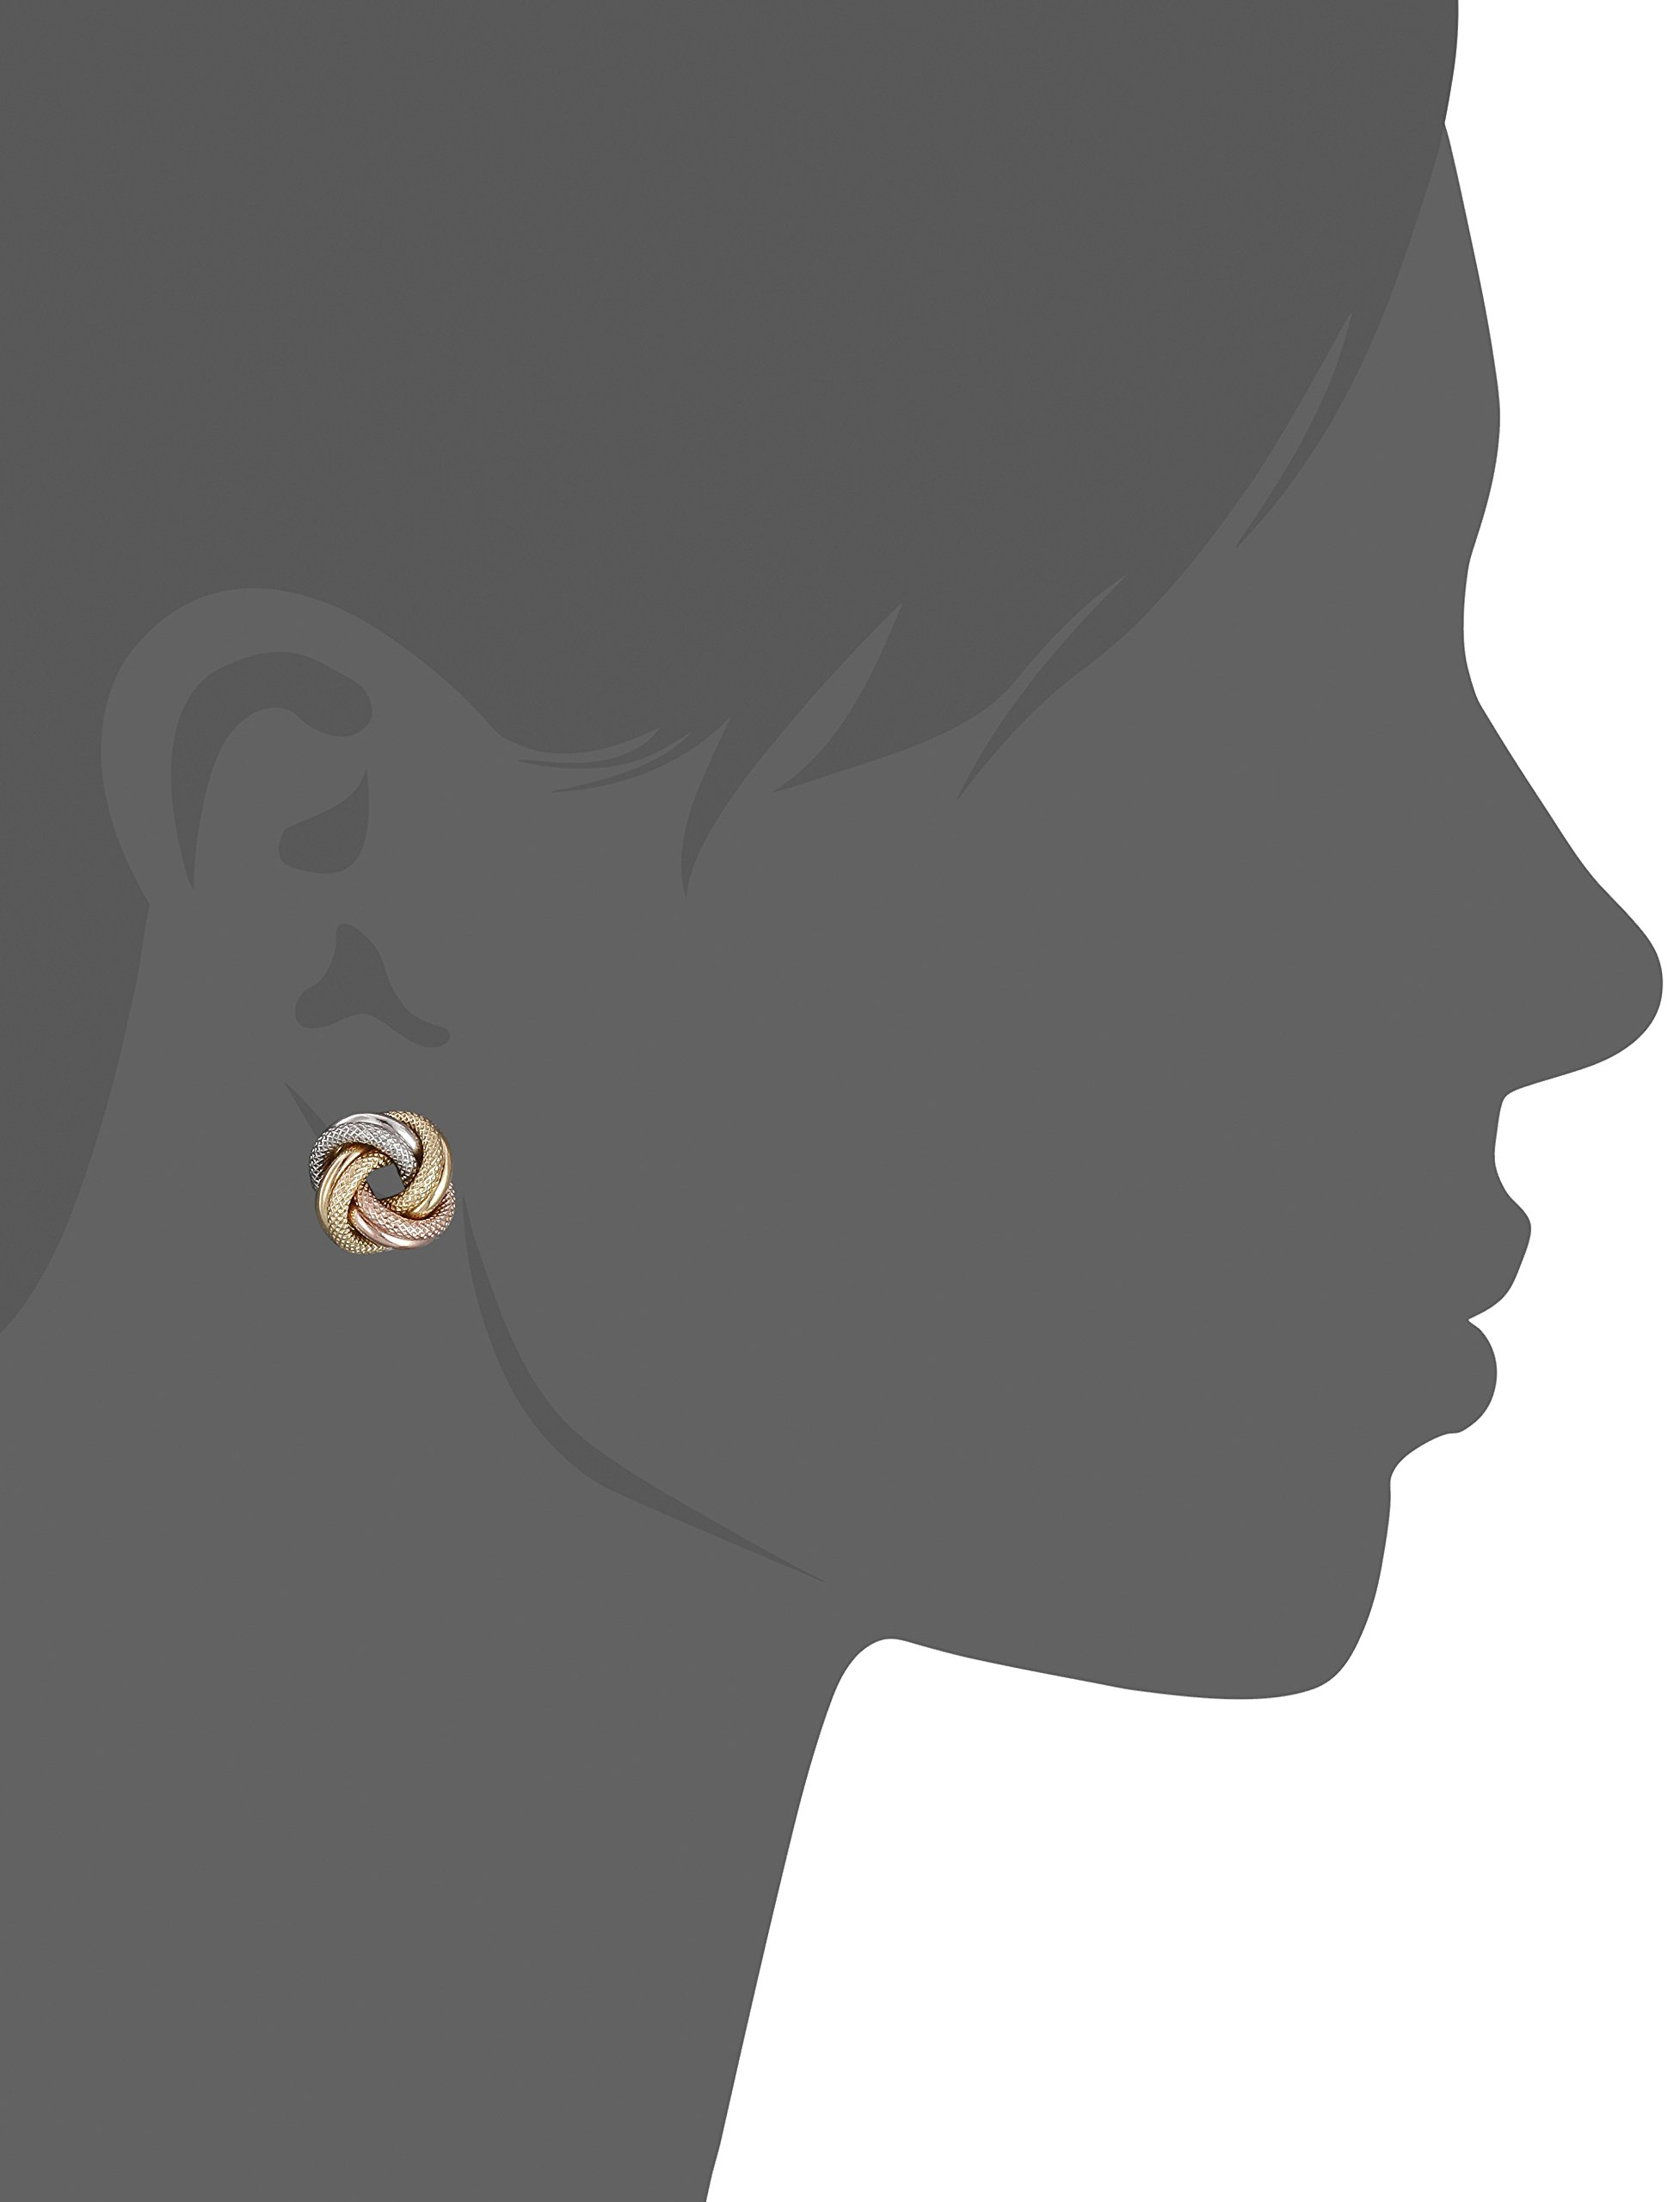 14k Gold Italian Tri-Color Love Knot Stud Earrings by Amazon Collection (Image #2)